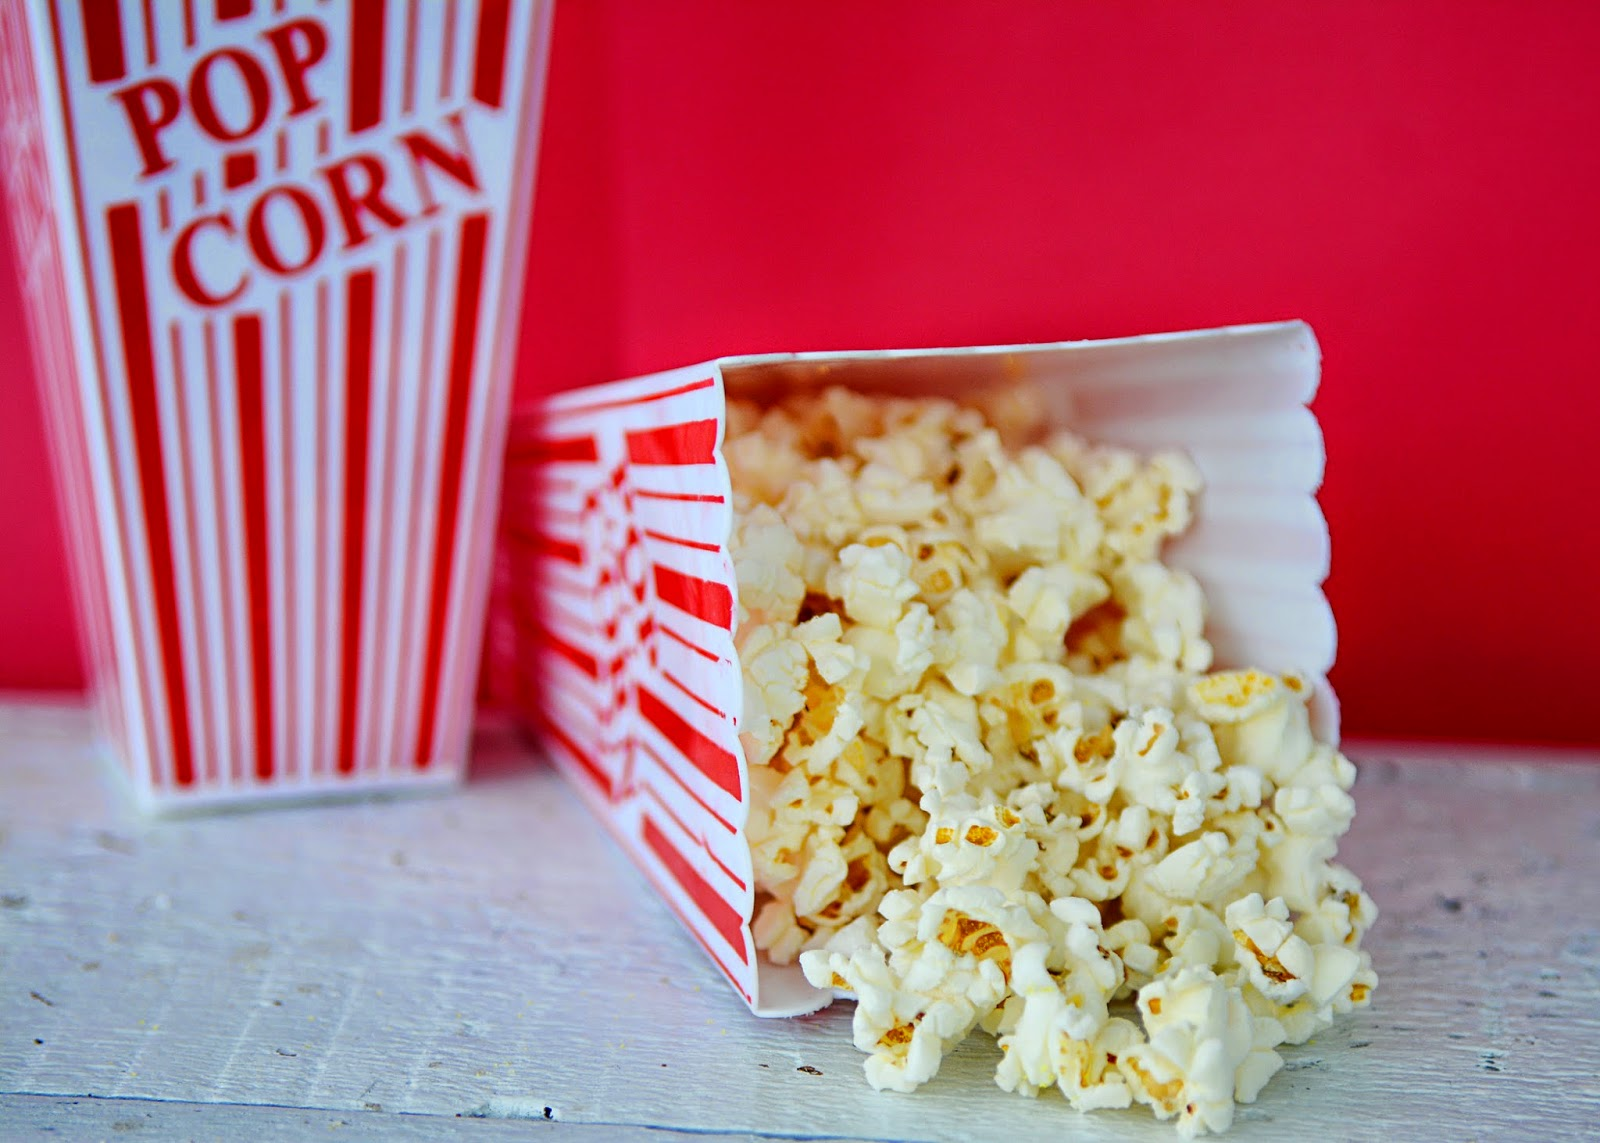 Popcorn or Field Corn   What's the Difference? - The Farmwife Crafts